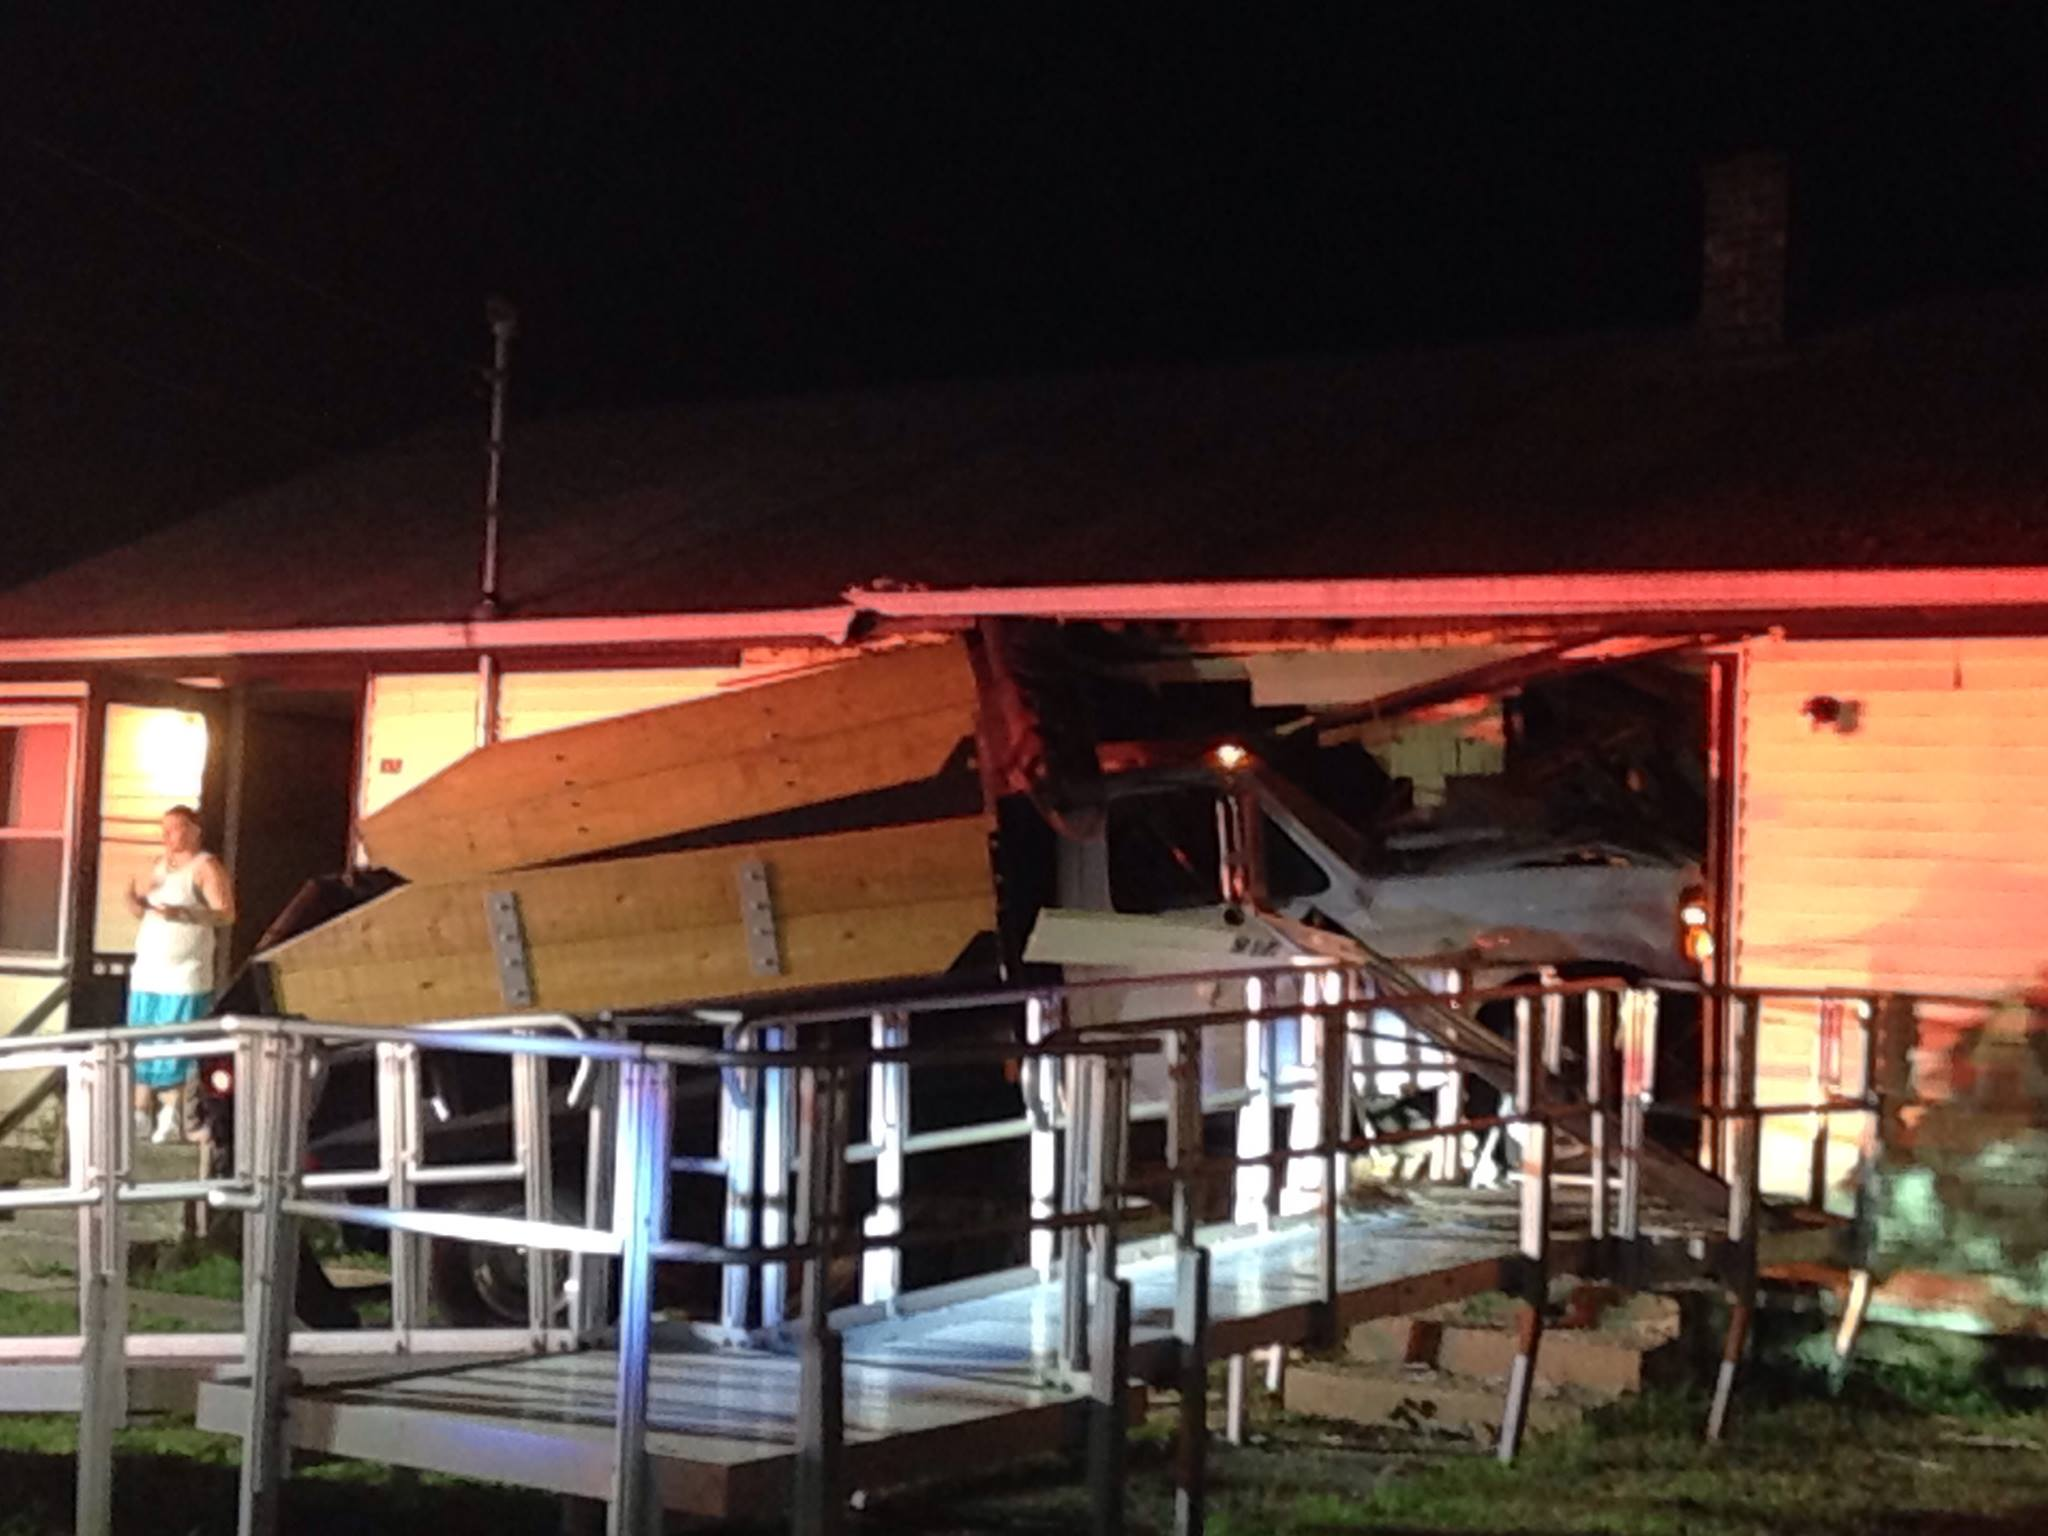 Truck crashes into South Kingstown home. (Submitted photo to NBC10)